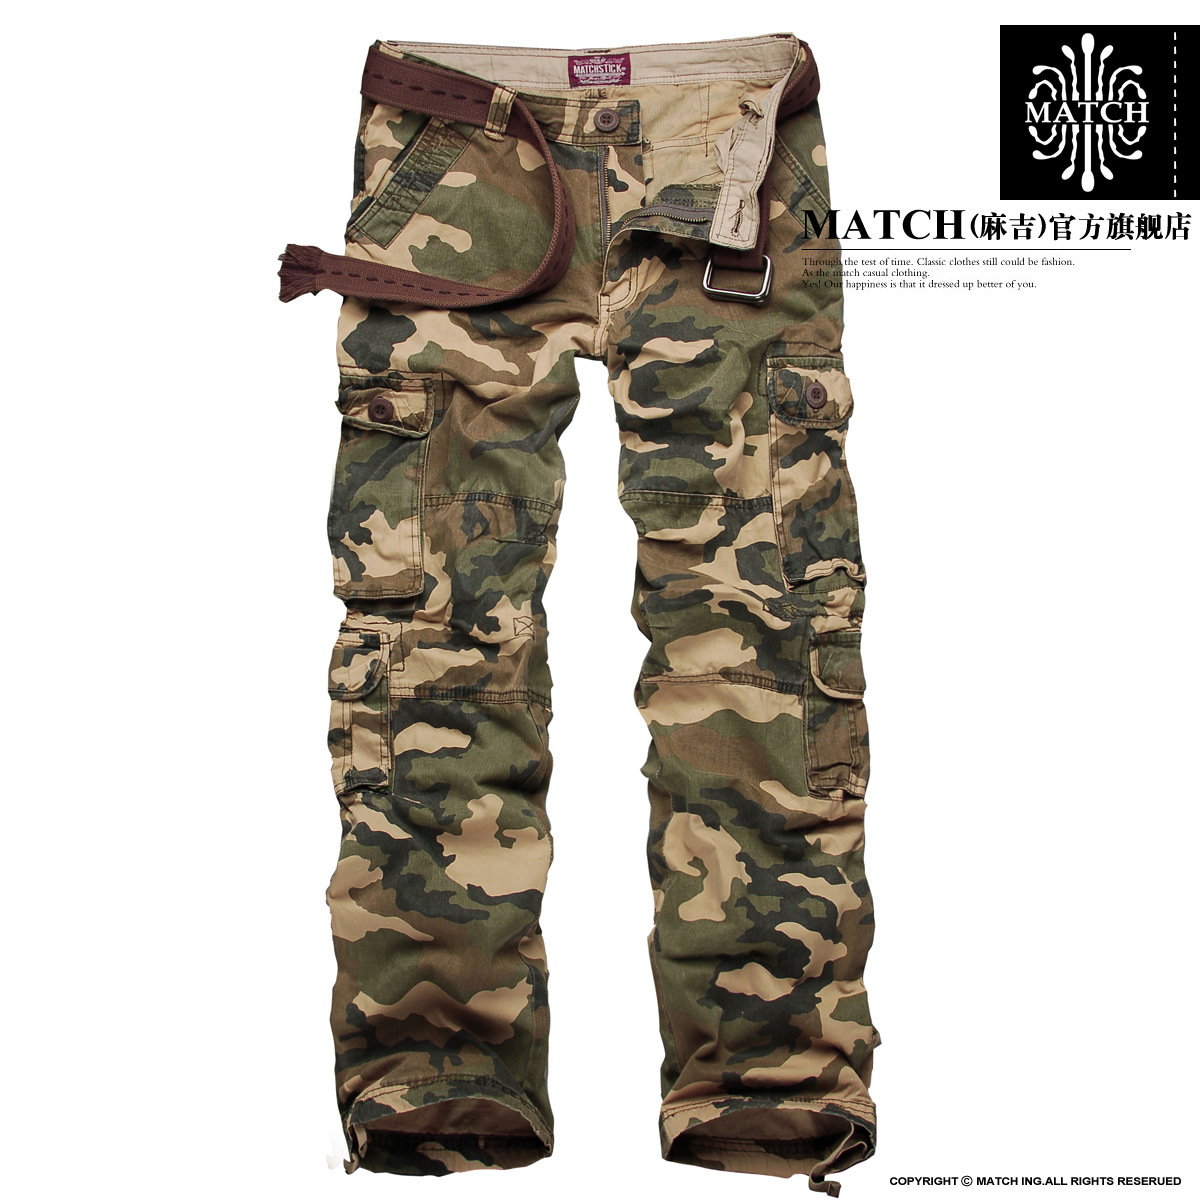 Match autumn 100% cotton Camouflage pants outdoor bag overalls male casual long trousers 3316m(China (Mainland))